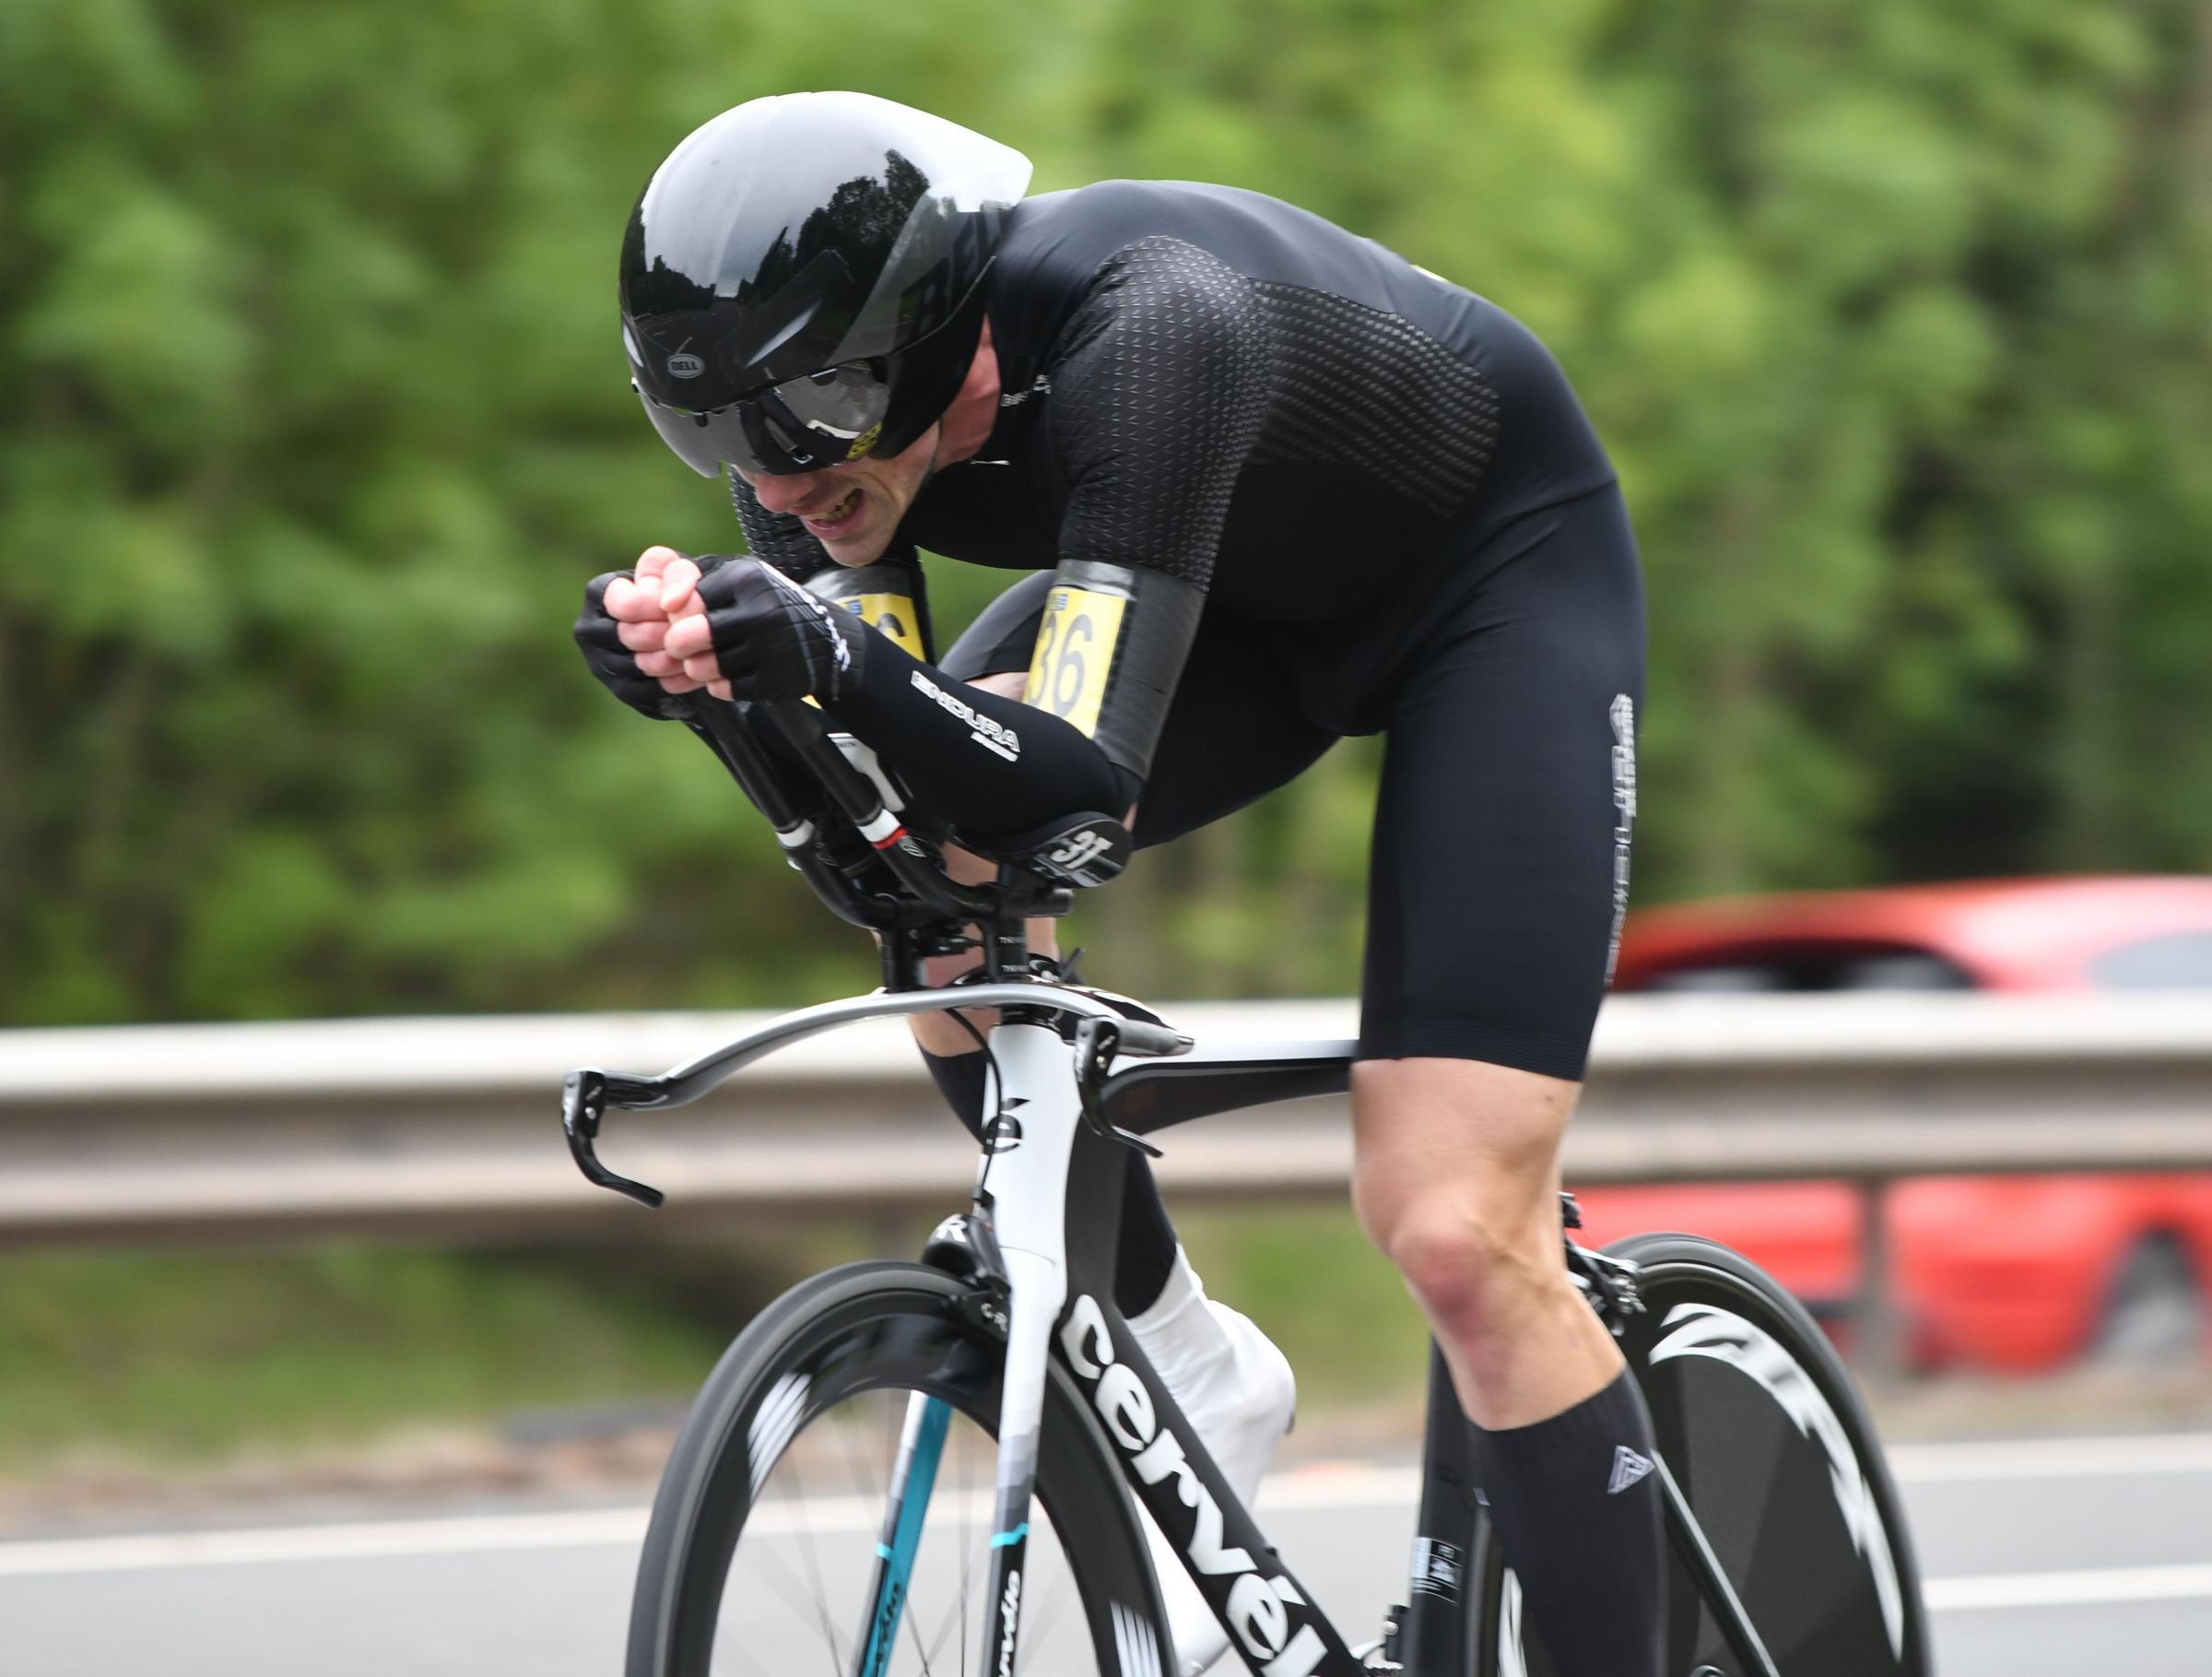 Didcot Phoenix cyclist Chris Boddy came joint fourth in national ten-mile time trial